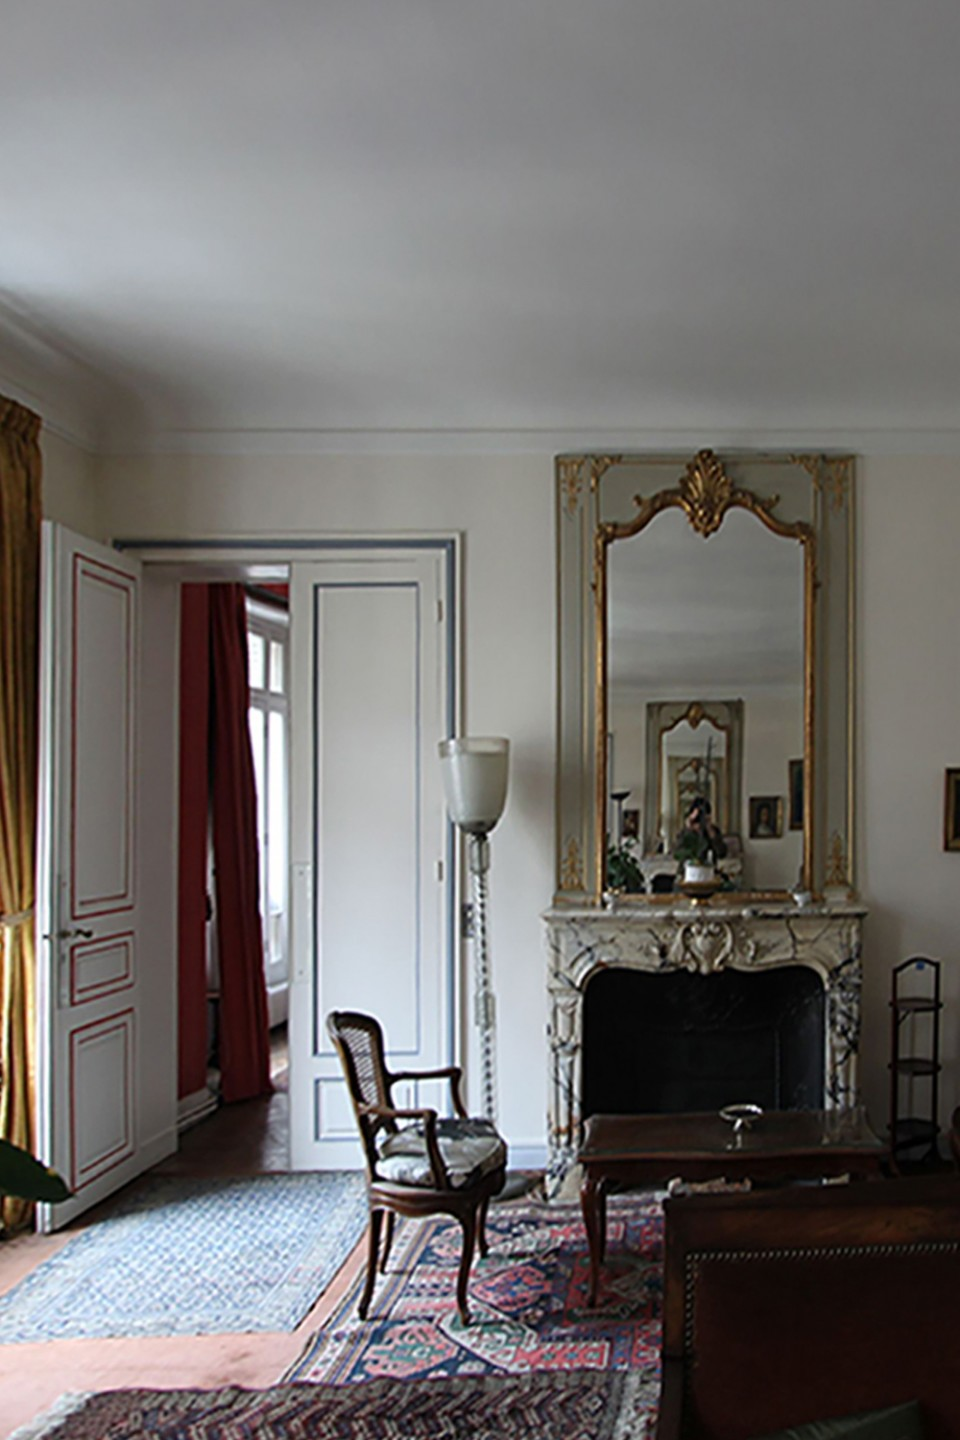 RENOVATION_APPARTEMENT_PARIS_SALON_AVANT